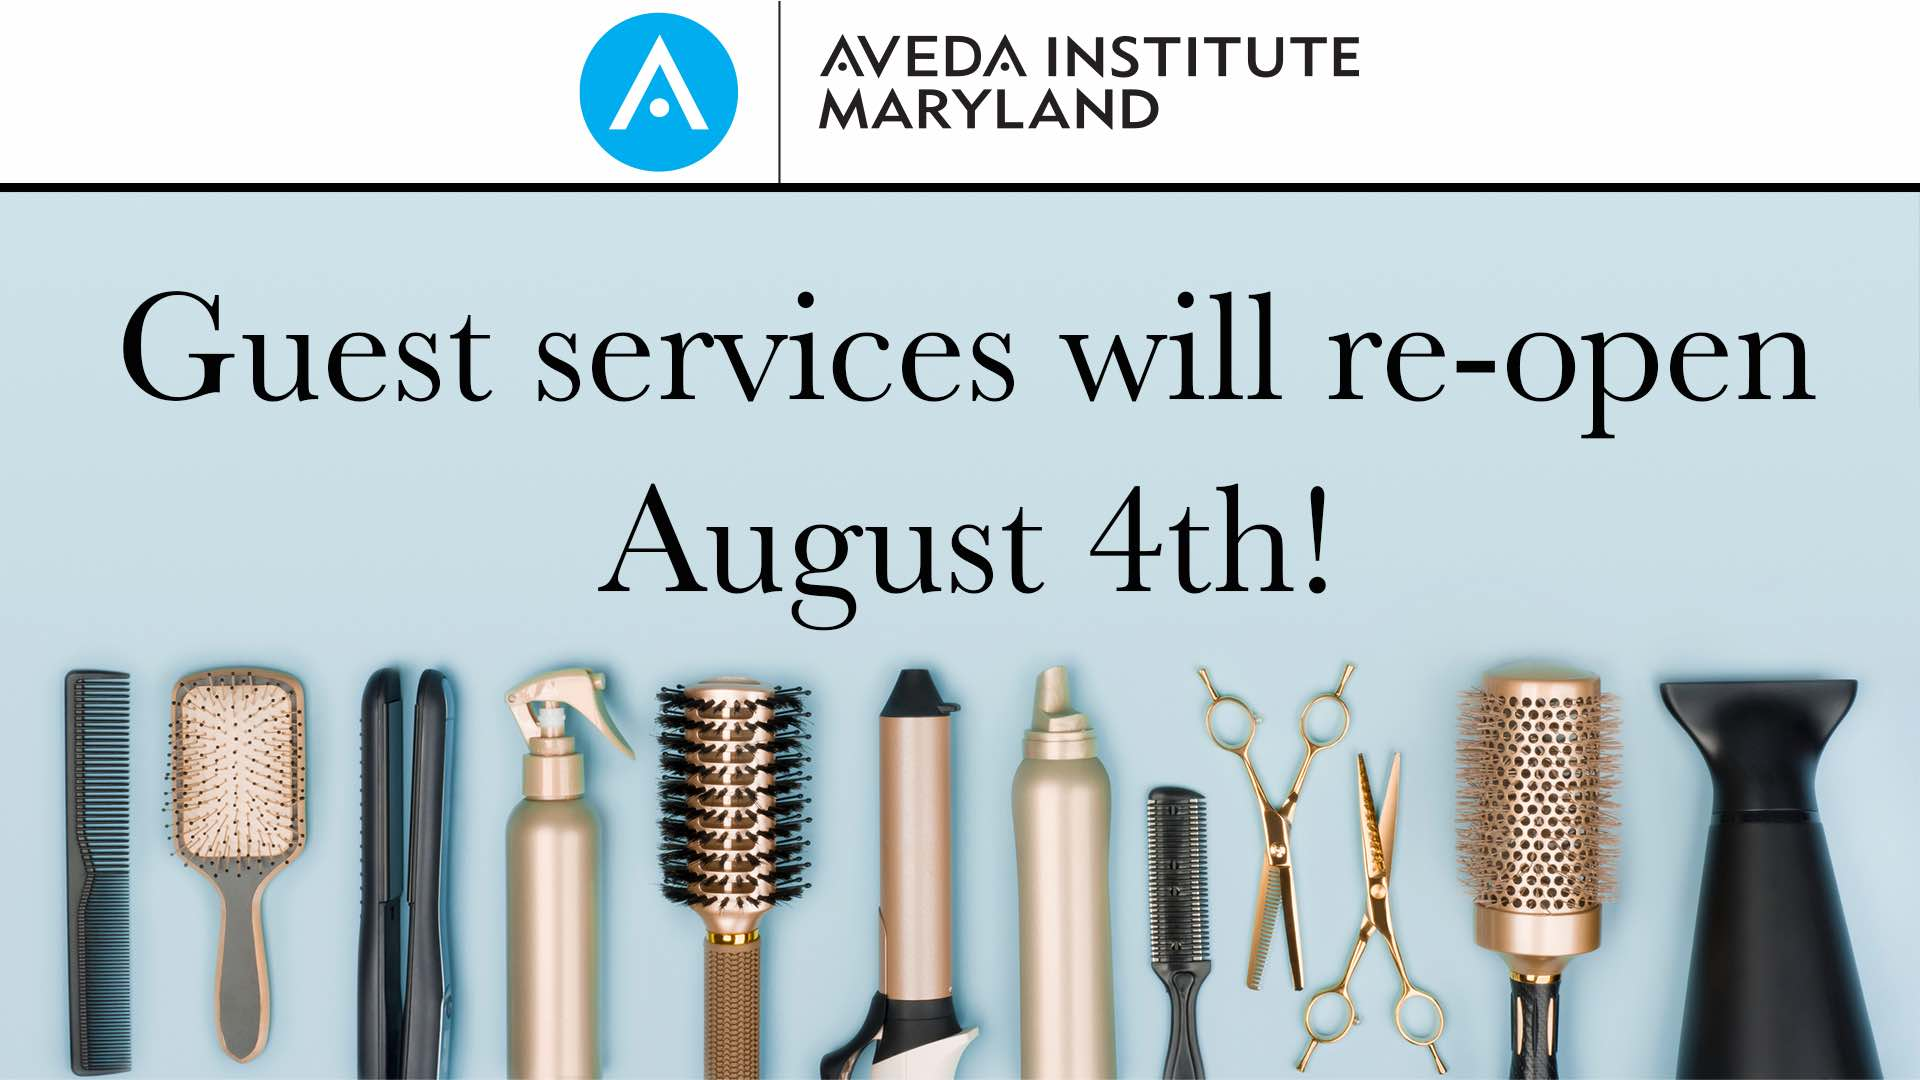 Aveda Institute Maryalnd Guest Services Re-Opening